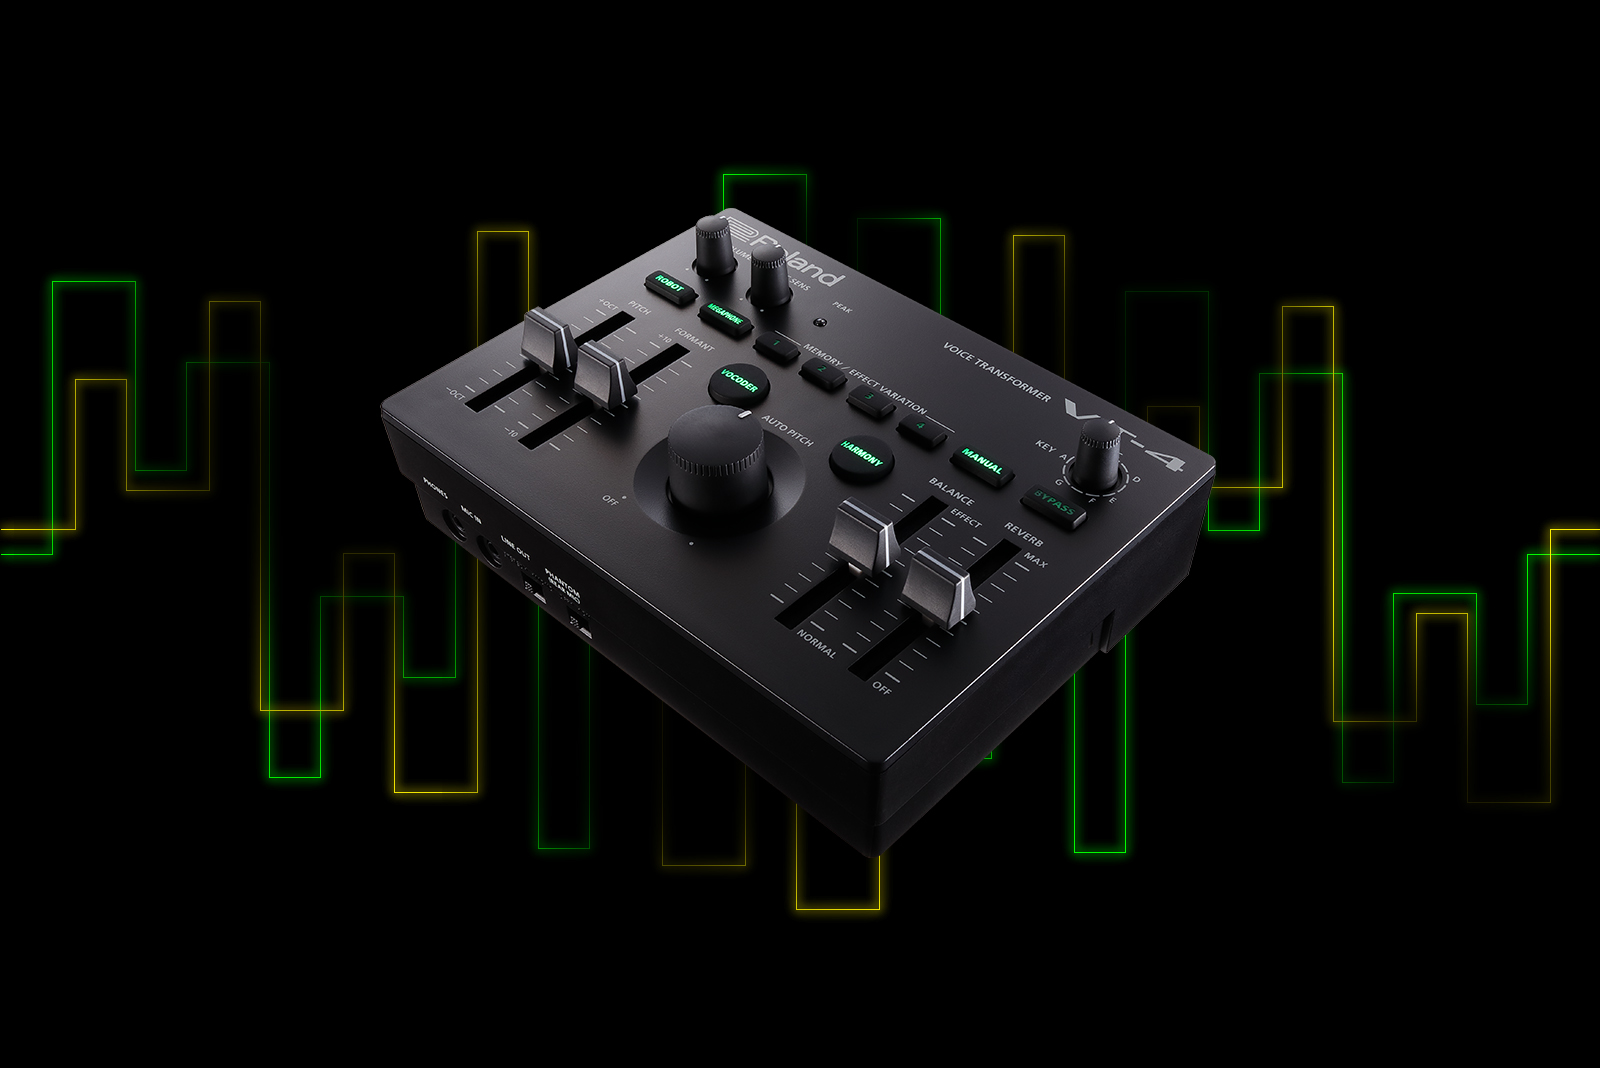 Roland Us Electronic Circuit Simulation Software Free Download Vt 4voice Transformer